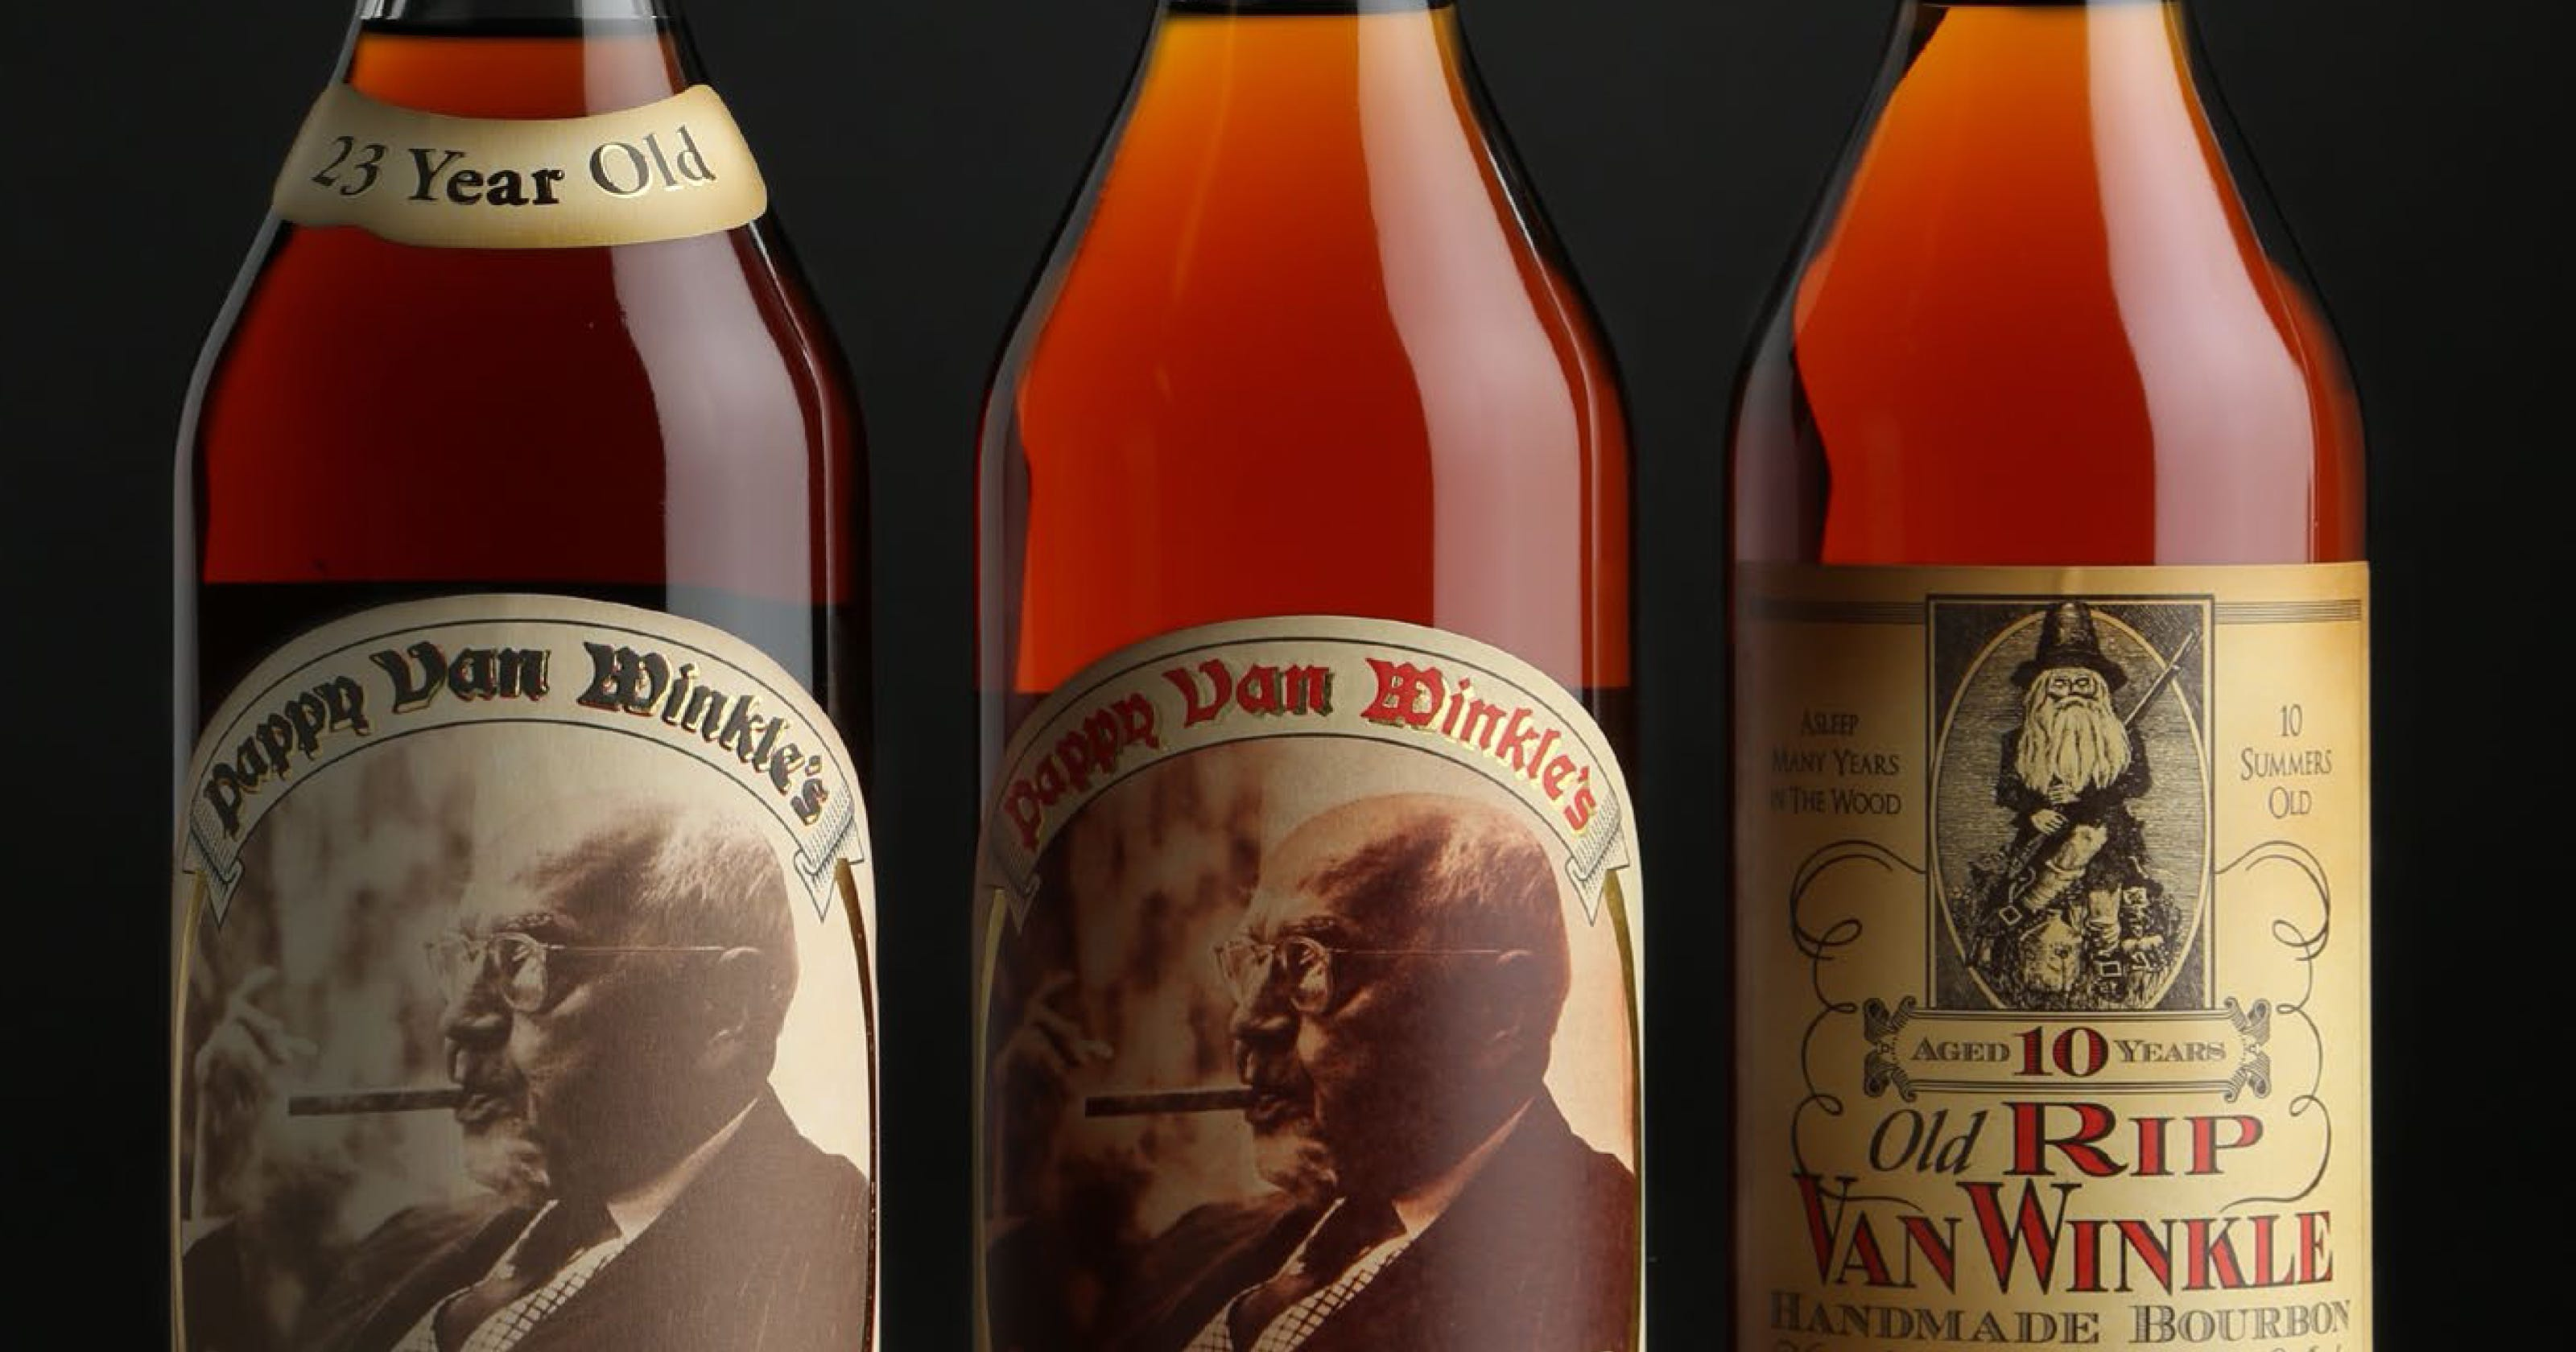 792f667f5a0 The fight for Pappy Van Winkle whiskey is near. New bottles to be released  in November